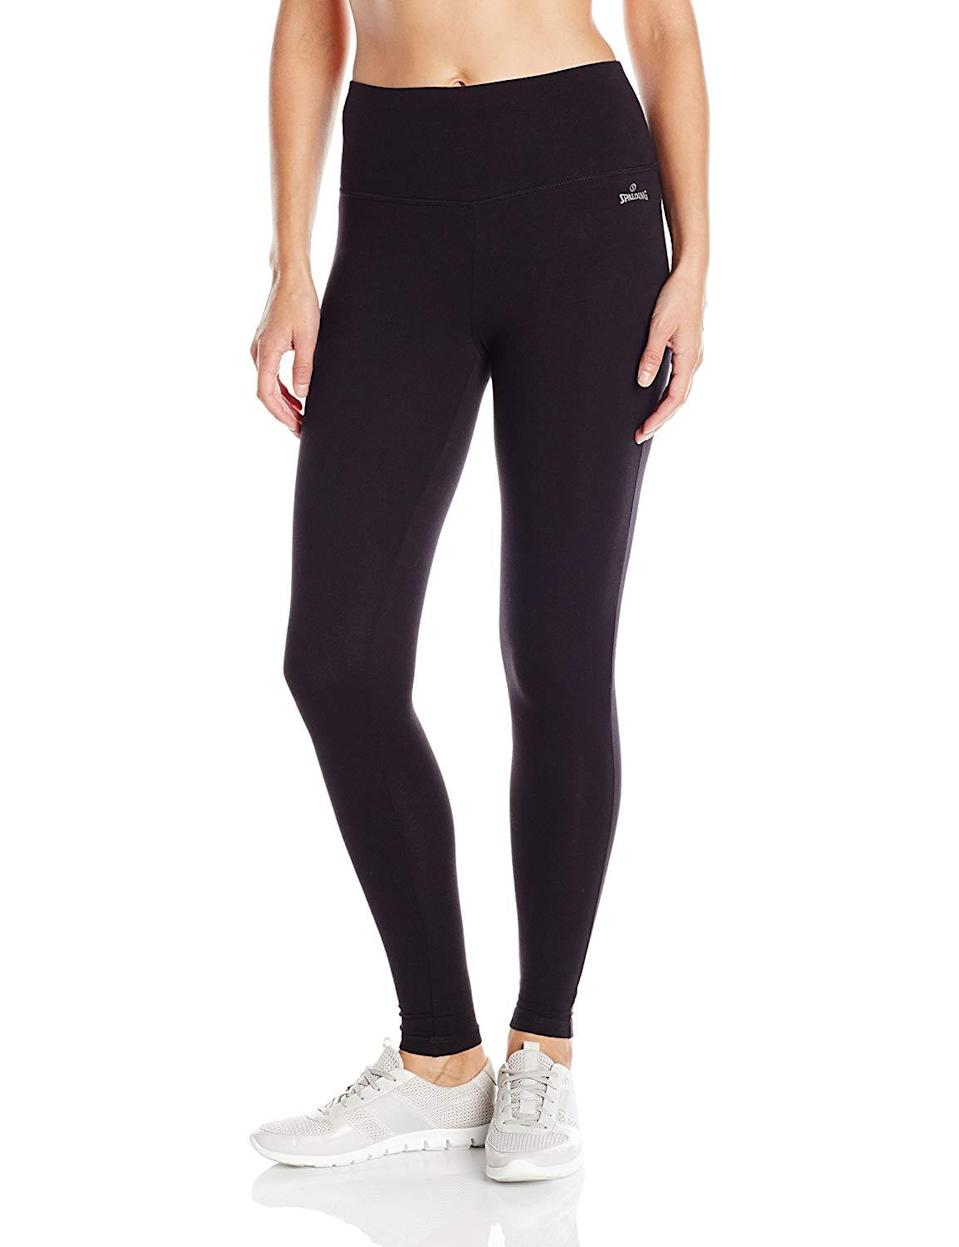 "<h3><strong><a href=""https://www.amazon.com/Spalding-Womens-High-Waisted-Legging-Black/dp/B01IDGA1LU"" rel=""nofollow noopener"" target=""_blank"" data-ylk=""slk:Spalding High-Waisted Legging"" class=""link rapid-noclick-resp"">Spalding High-Waisted Legging</a></strong> </h3><br><br>4.5 out of 5 stars and 909 reviews<br><br><strong>Promising Review: </strong>Most users have been longtime fans of this specific pair of leggings. One Amazon customer even calls them the ""<a href=""https://www.amazon.com/gp/customer-reviews/RLA13X11VAEXQ"" rel=""nofollow noopener"" target=""_blank"" data-ylk=""slk:best leggings ever"" class=""link rapid-noclick-resp"">best leggings ever</a>"" citing, ""These are by far the best leggings I've ever worn. The high waist makes them really comfortable and they stay put. They're not really see through when you bend over either. I've had two pairs for a couple years and no holes yet! I have a pair for everyday.""<br><br><strong>Spalding</strong> High-Waisted Legging, $, available at <a href=""https://www.amazon.com/Spalding-Womens-High-Waisted-Legging-Medium/dp/B01IDGA1LU"" rel=""nofollow noopener"" target=""_blank"" data-ylk=""slk:Amazon"" class=""link rapid-noclick-resp"">Amazon</a>"